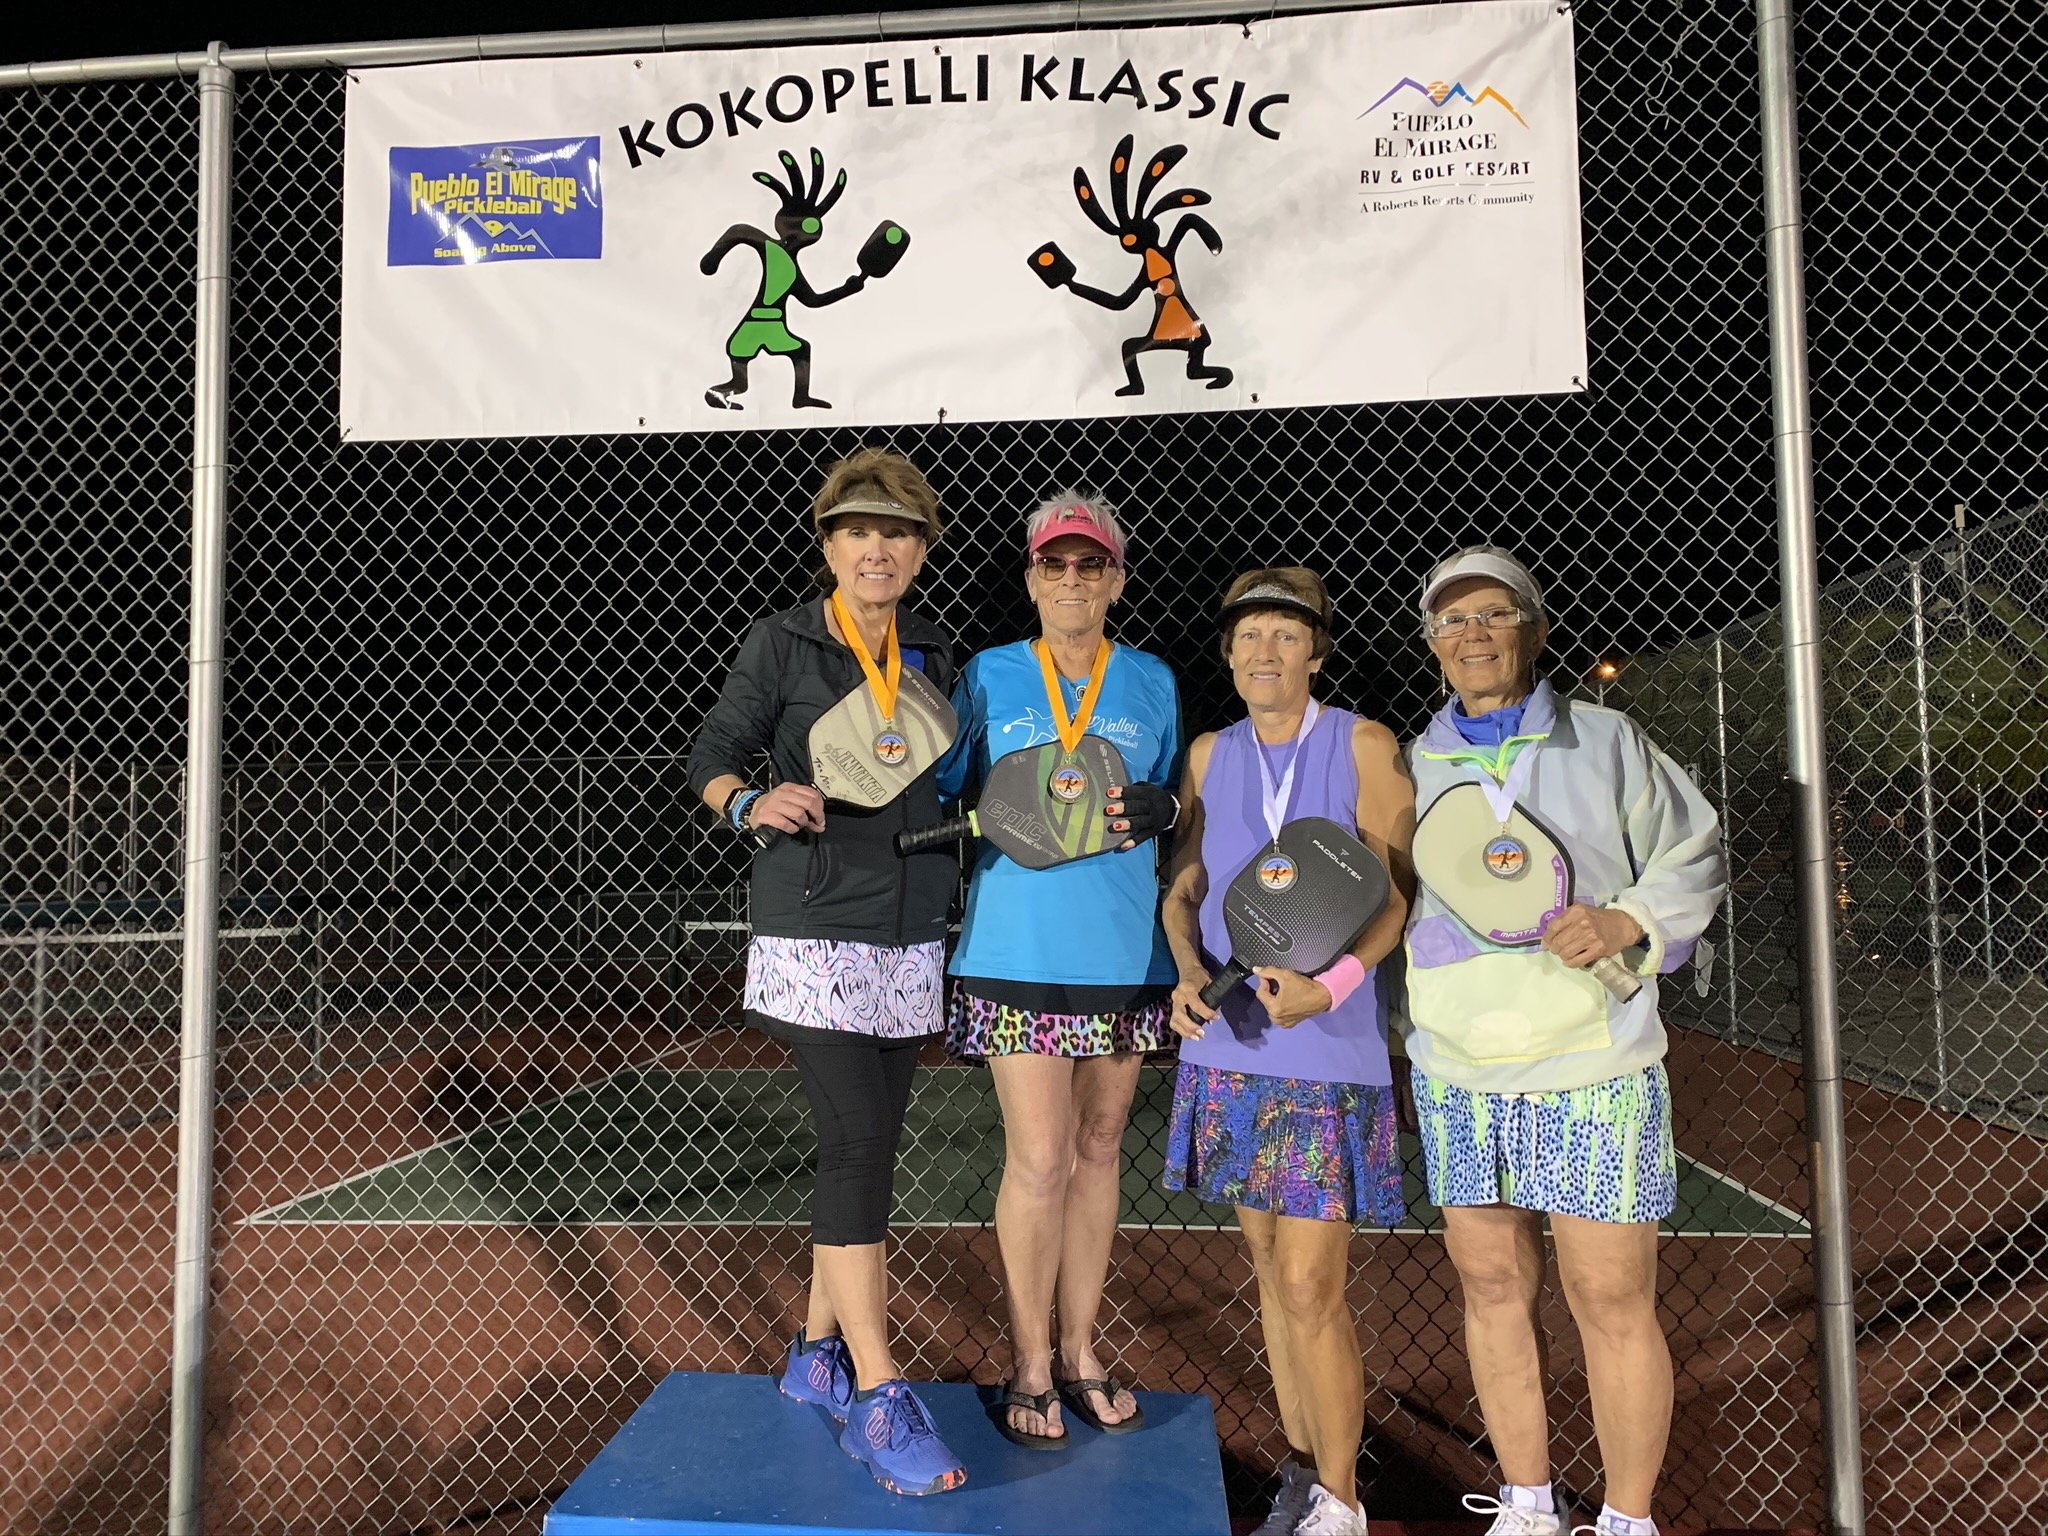 El Mirage Kokopelli Tourney